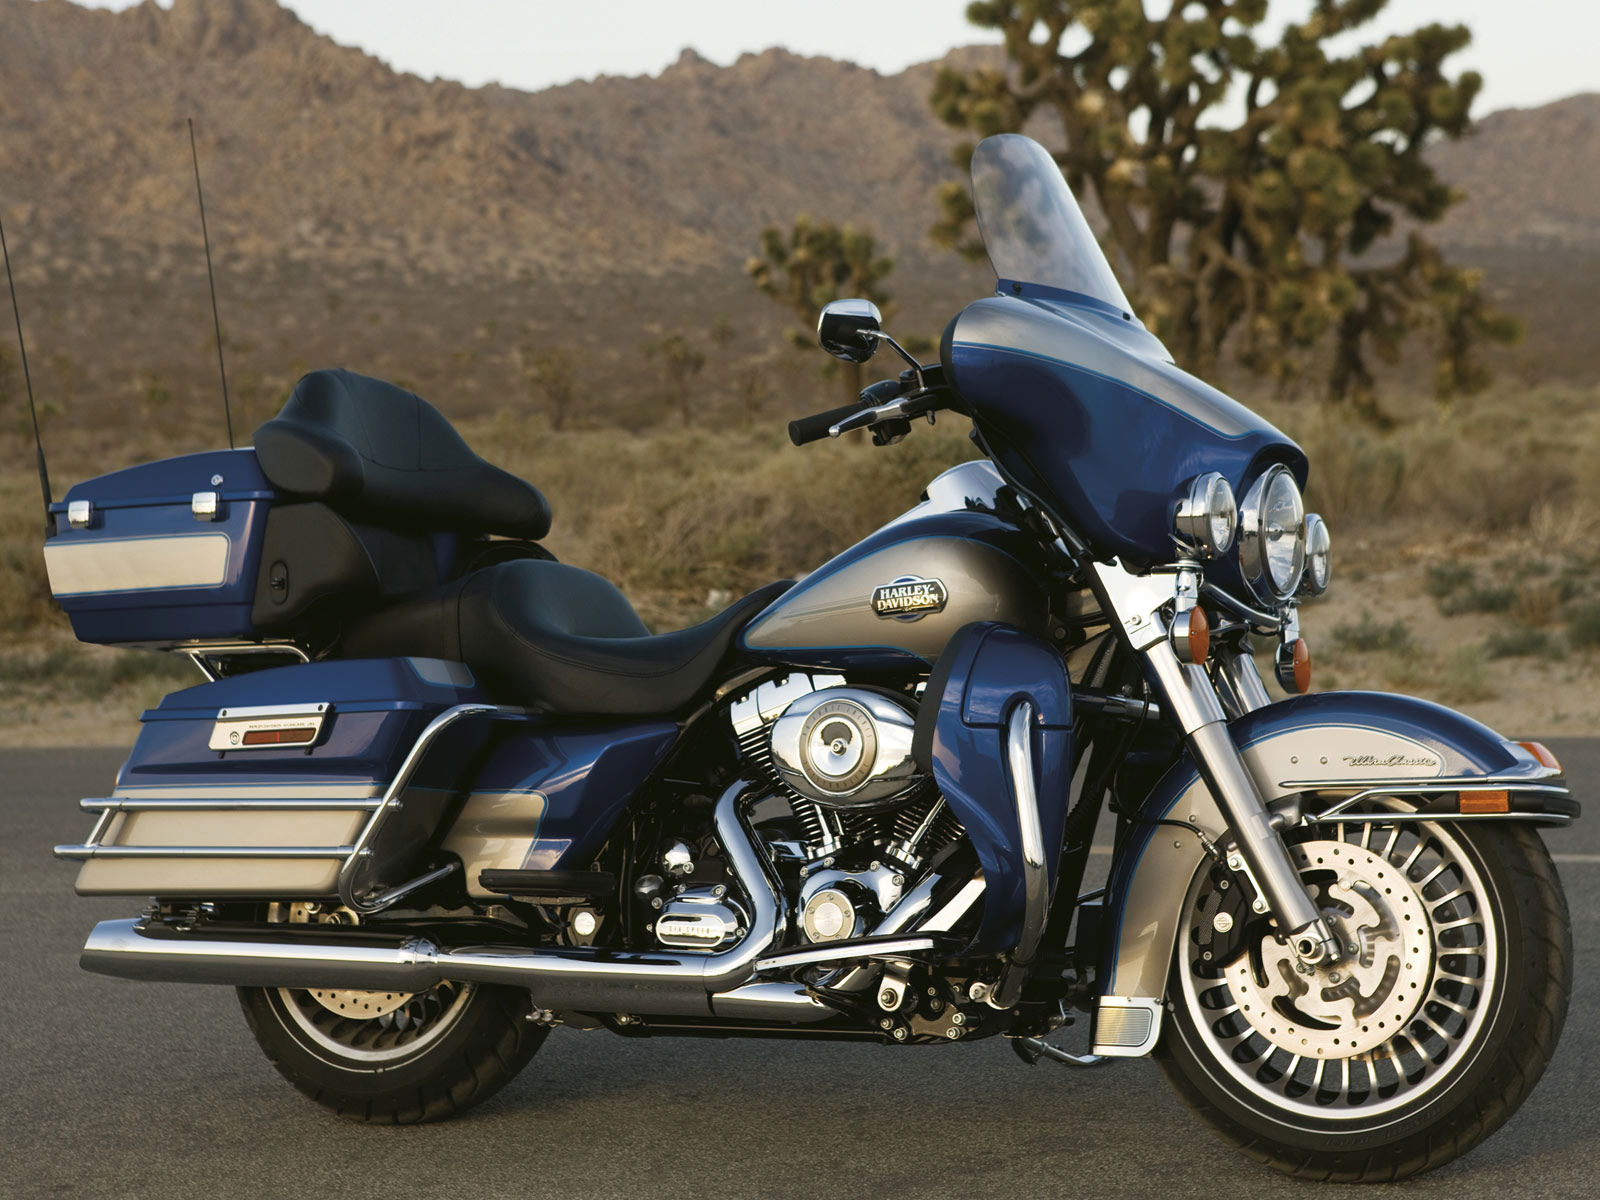 2012 harley davidson flhtcu ultra classic electra glide review top speed. Black Bedroom Furniture Sets. Home Design Ideas